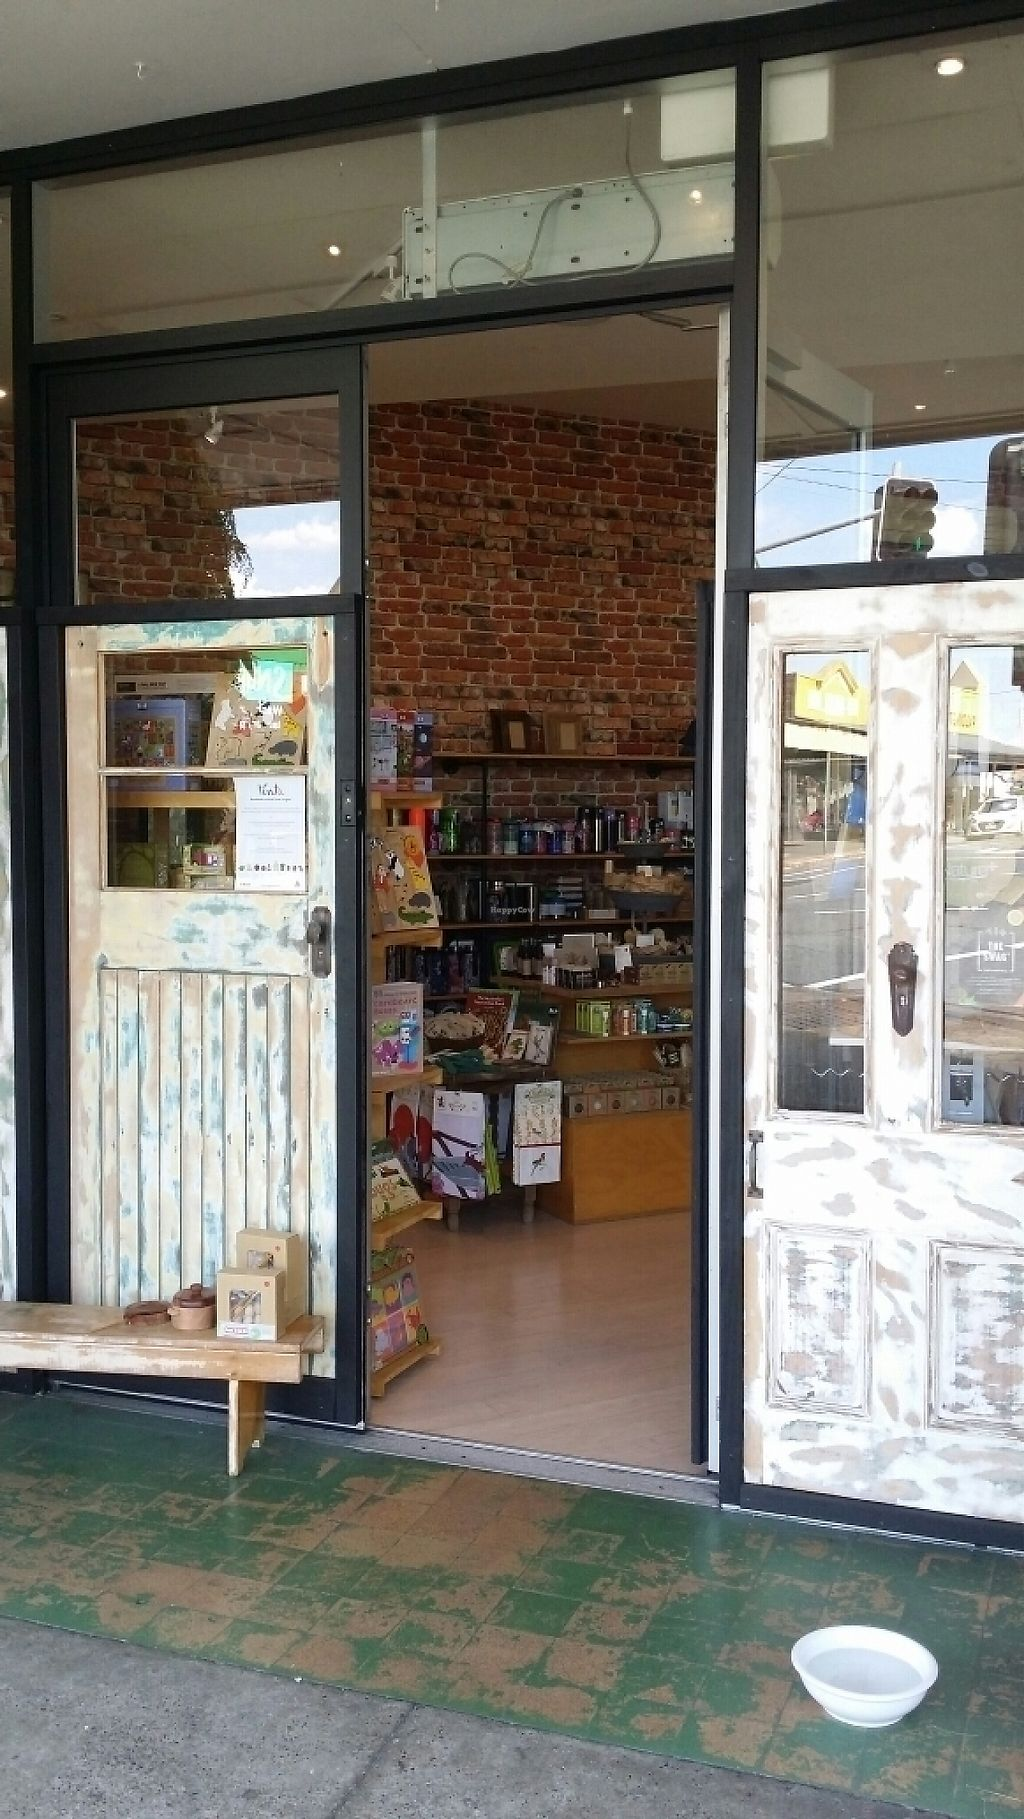 """Photo of Biome Eco Store  by <a href=""""/members/profile/Mike%20Munsie"""">Mike Munsie</a> <br/>shop front <br/> May 2, 2017  - <a href='/contact/abuse/image/74533/254870'>Report</a>"""